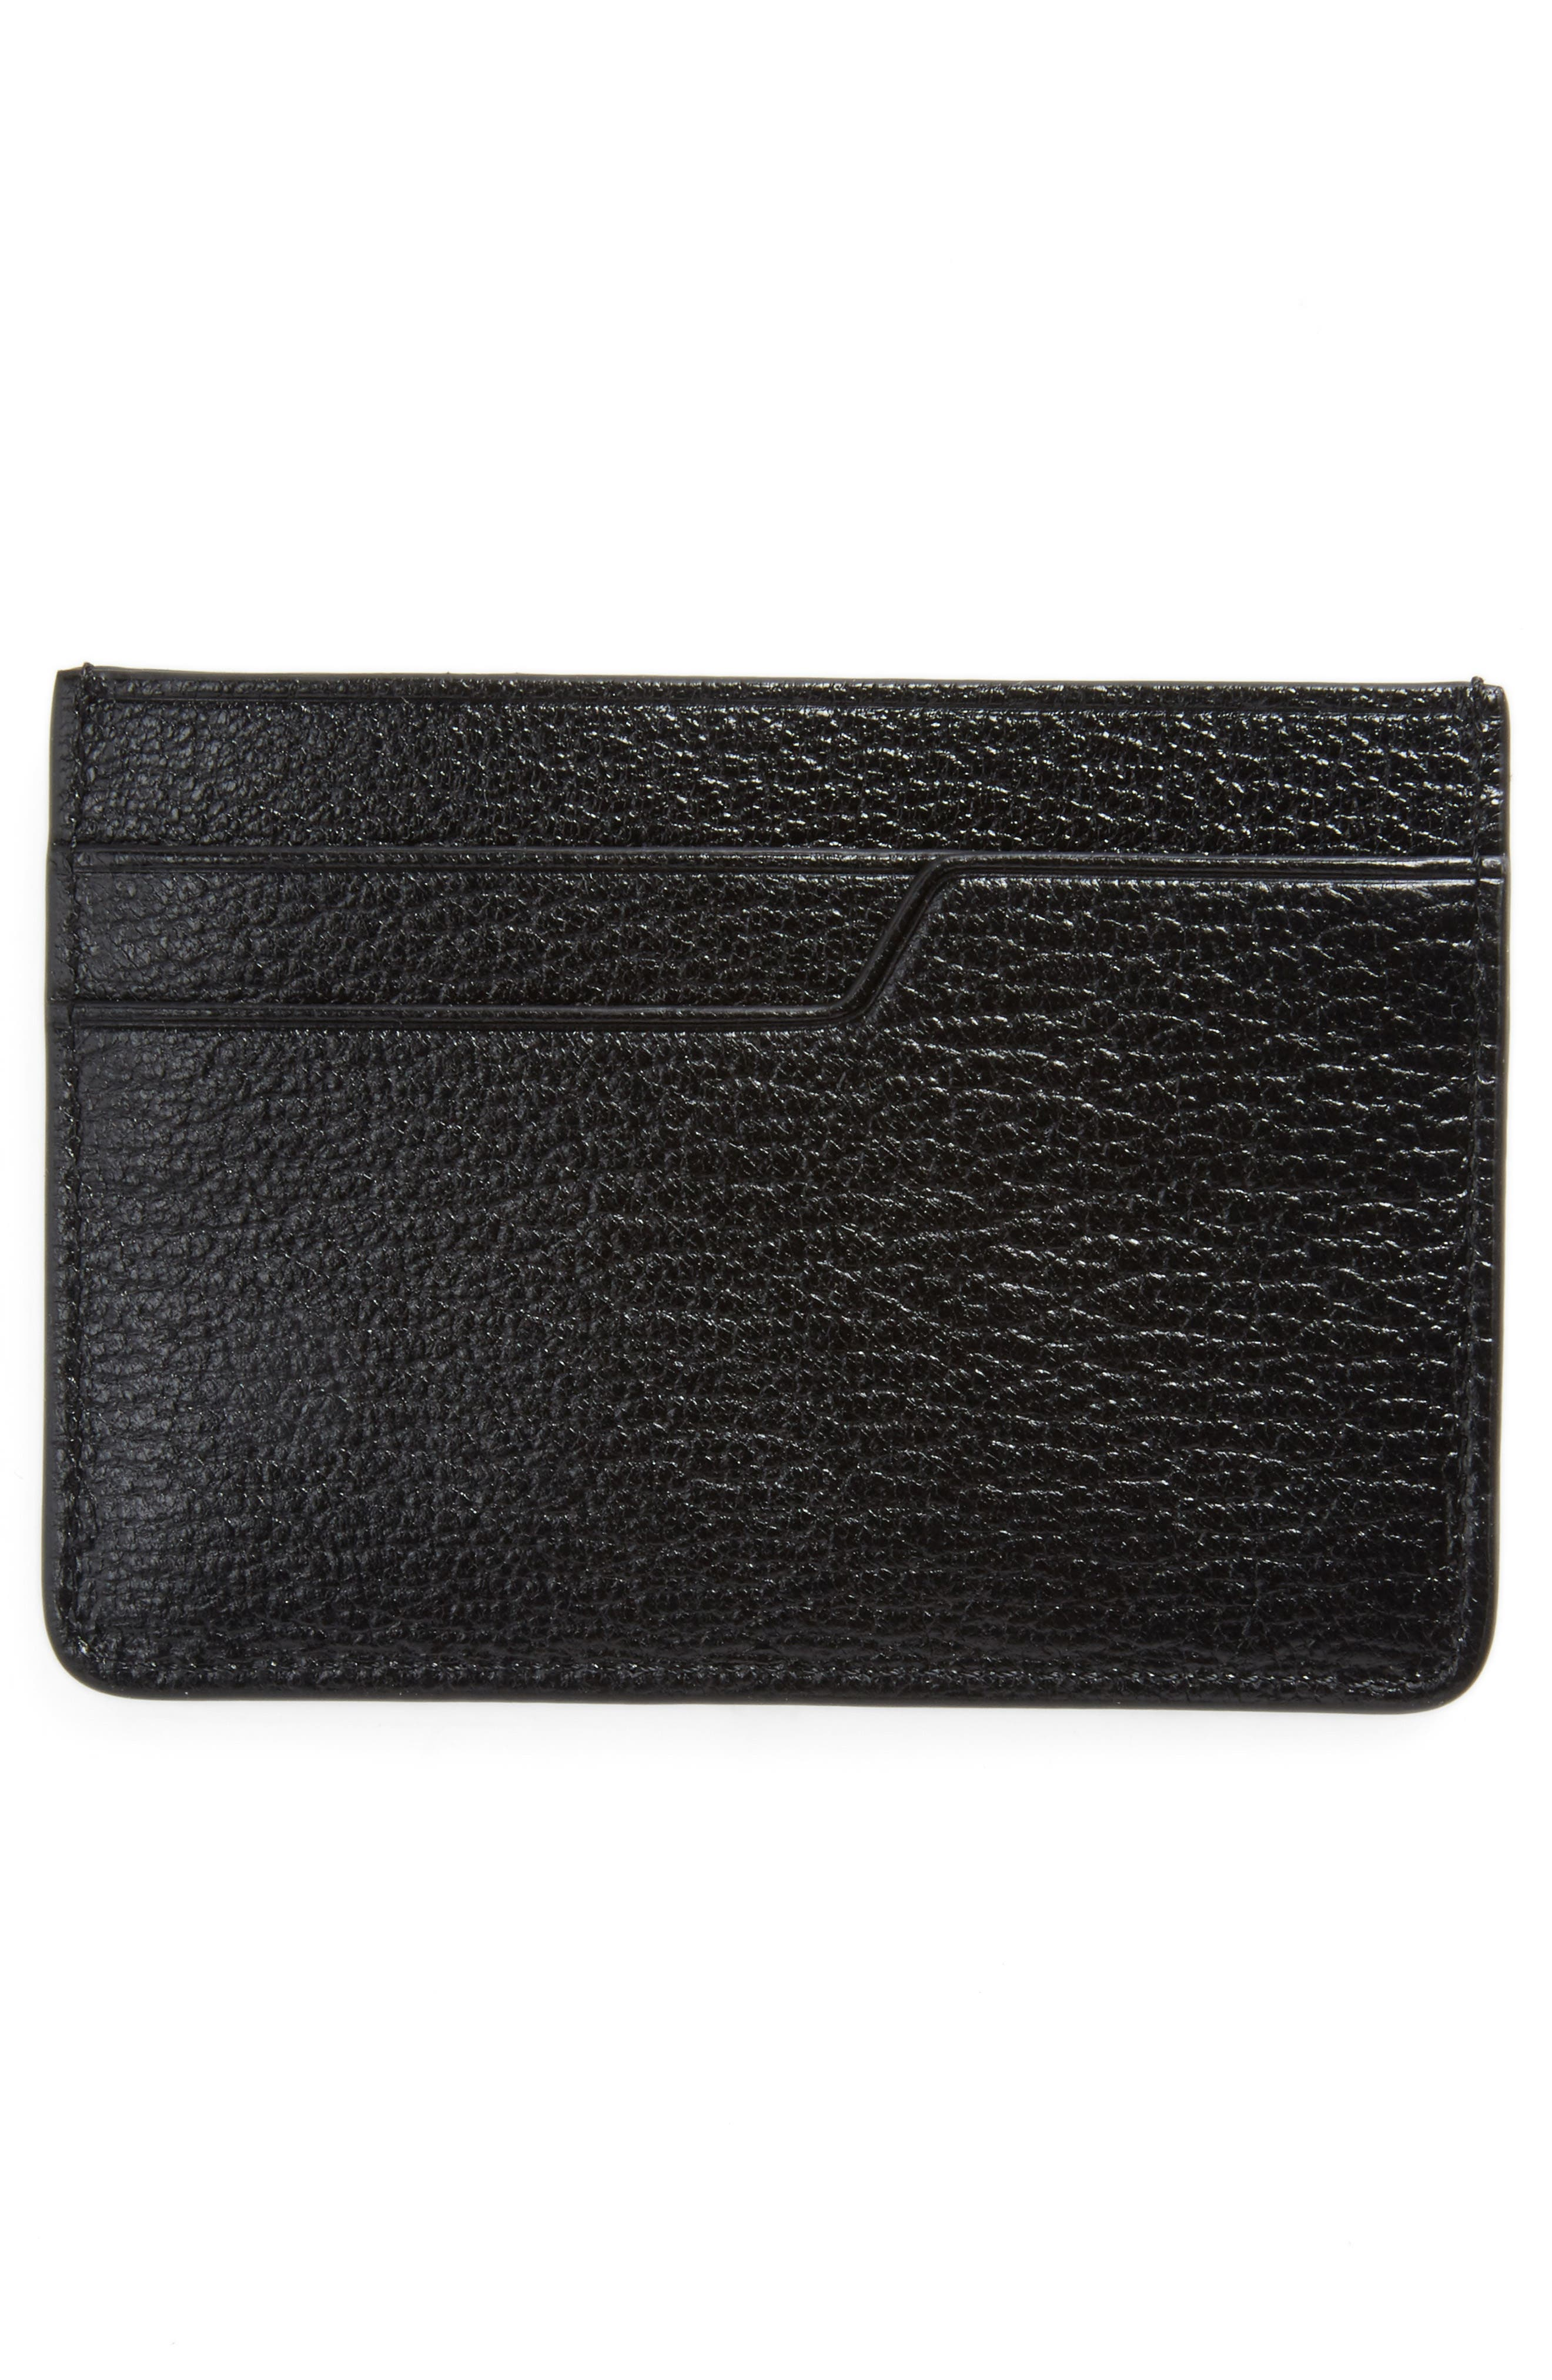 Eyes Leather Card Case,                             Alternate thumbnail 2, color,                             Black